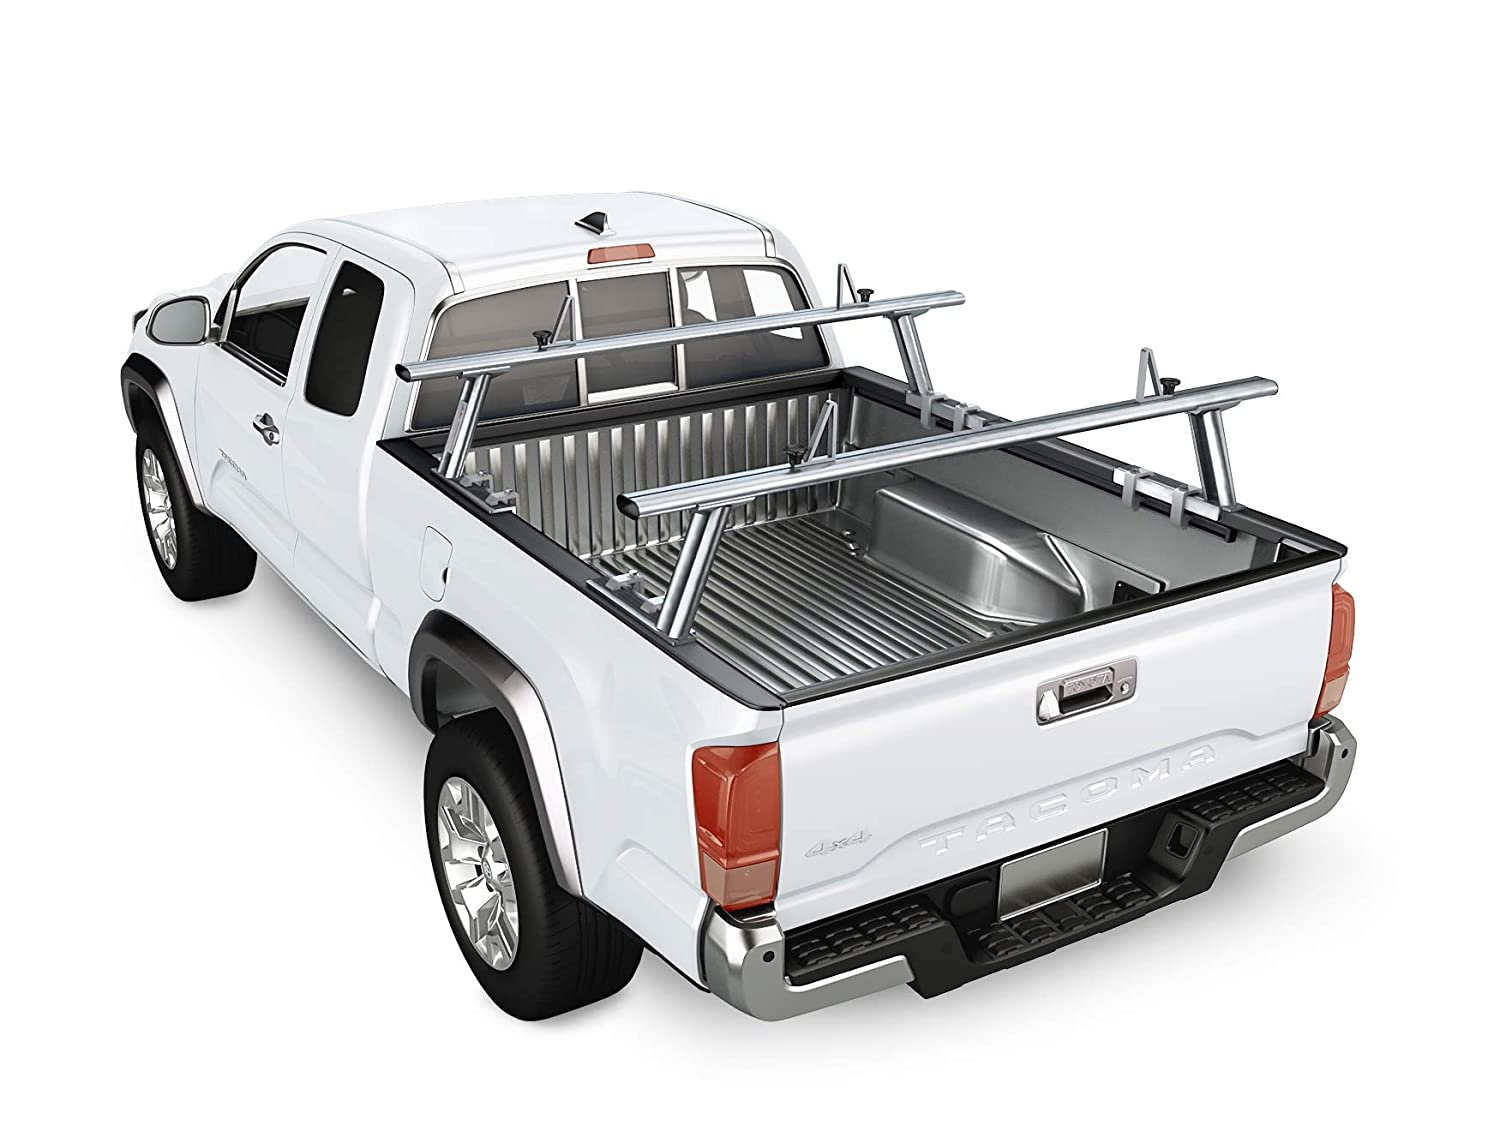 300lb On Road Capacity AA-Racks Model APX2503 Low Profile Heavy Duty Aluminum Truck Bed Rack for Trucks and Trailers with Open Rails